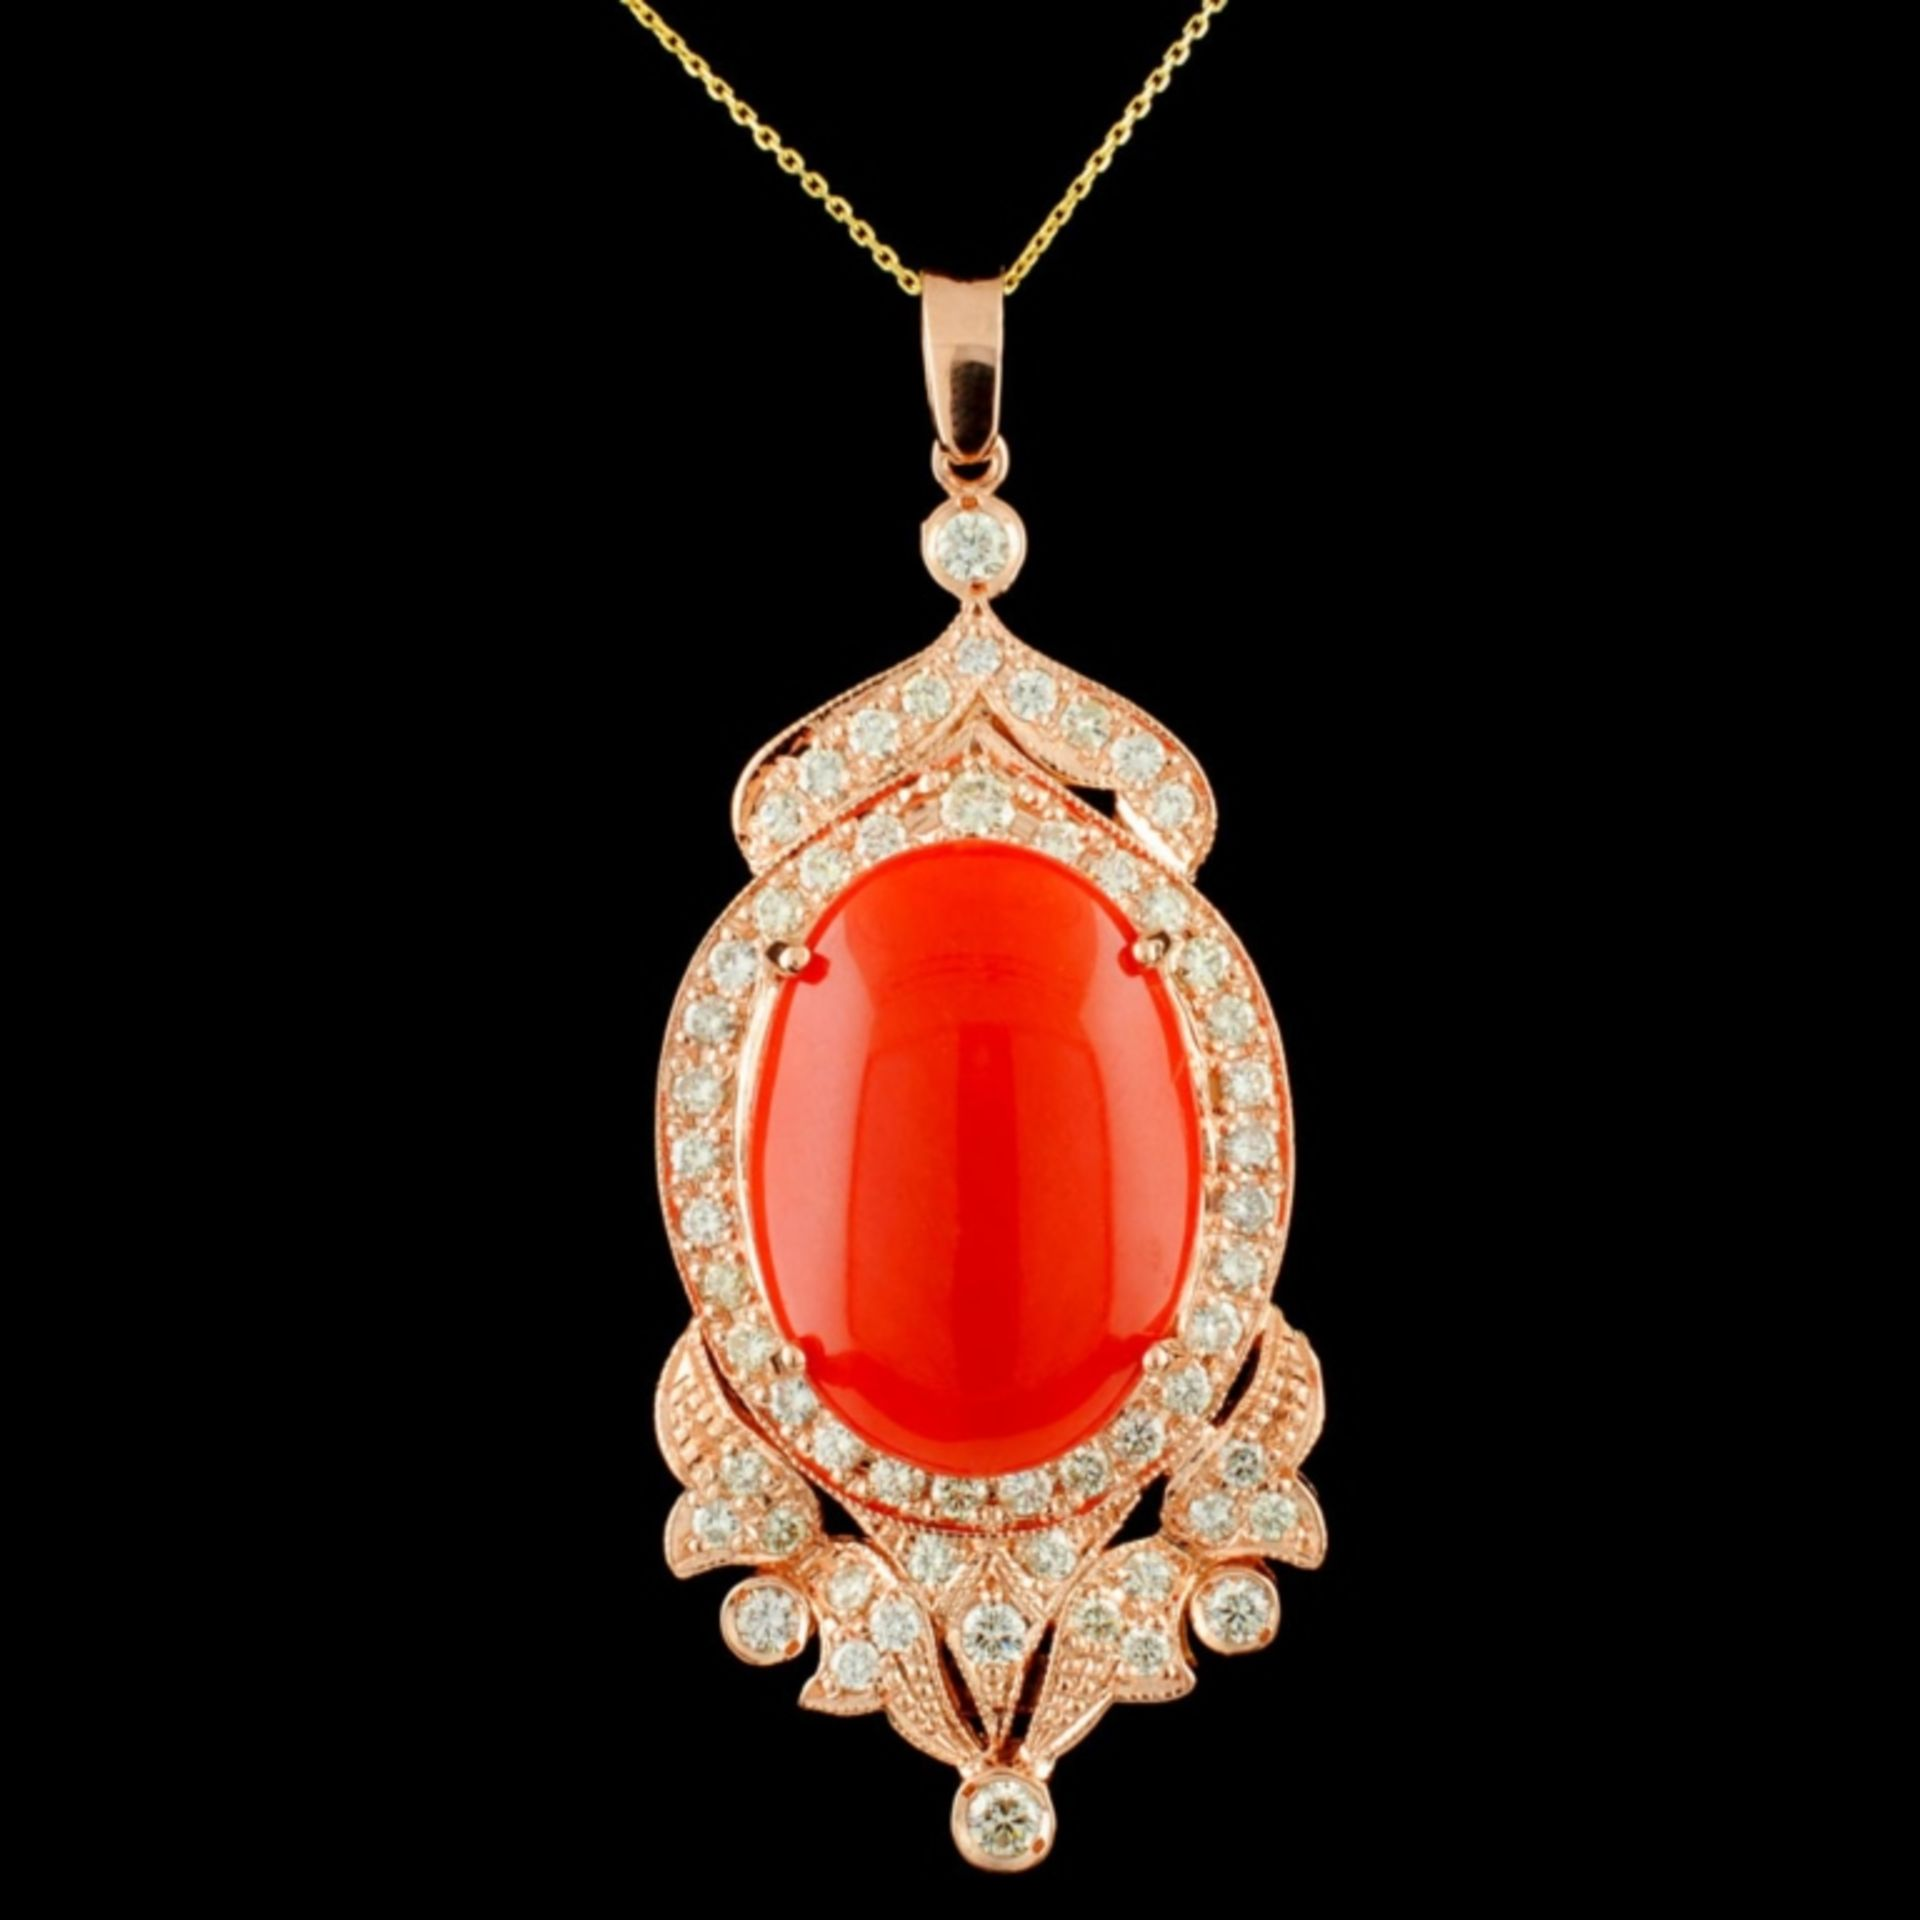 14K Gold 16.48ct Coral & 2.15ctw Diamond Pendant